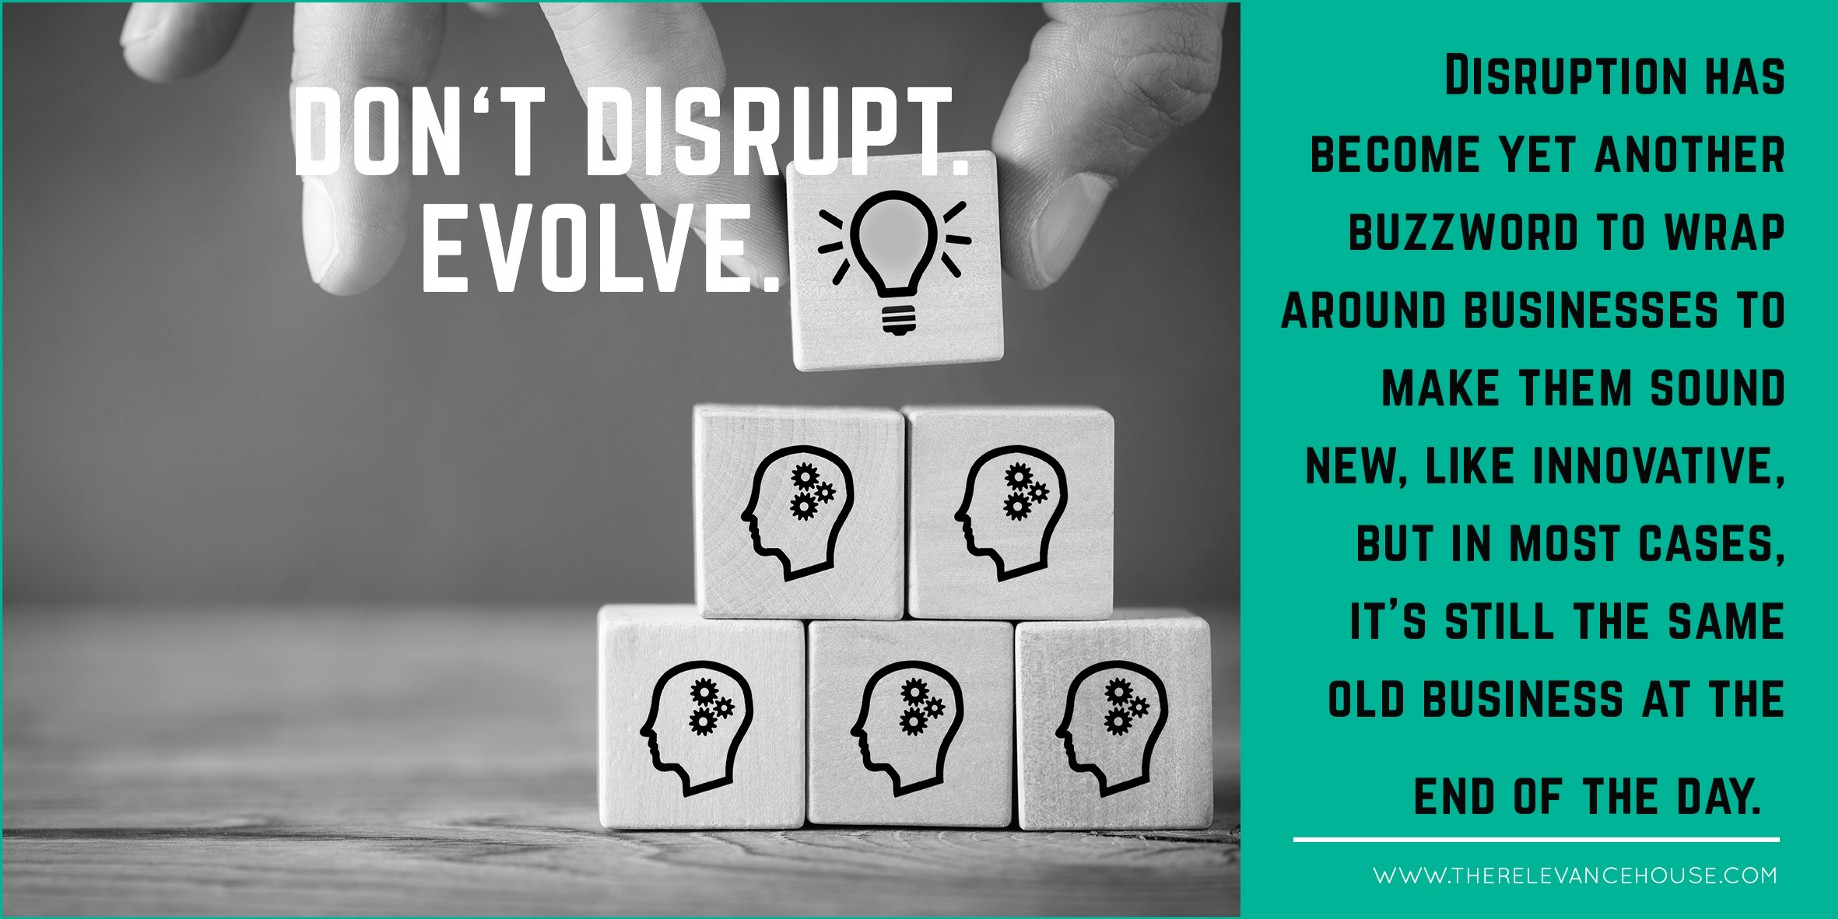 Becoming Just Another Corporate Old >> Don T Disrupt Evolve The Relevance House Medium